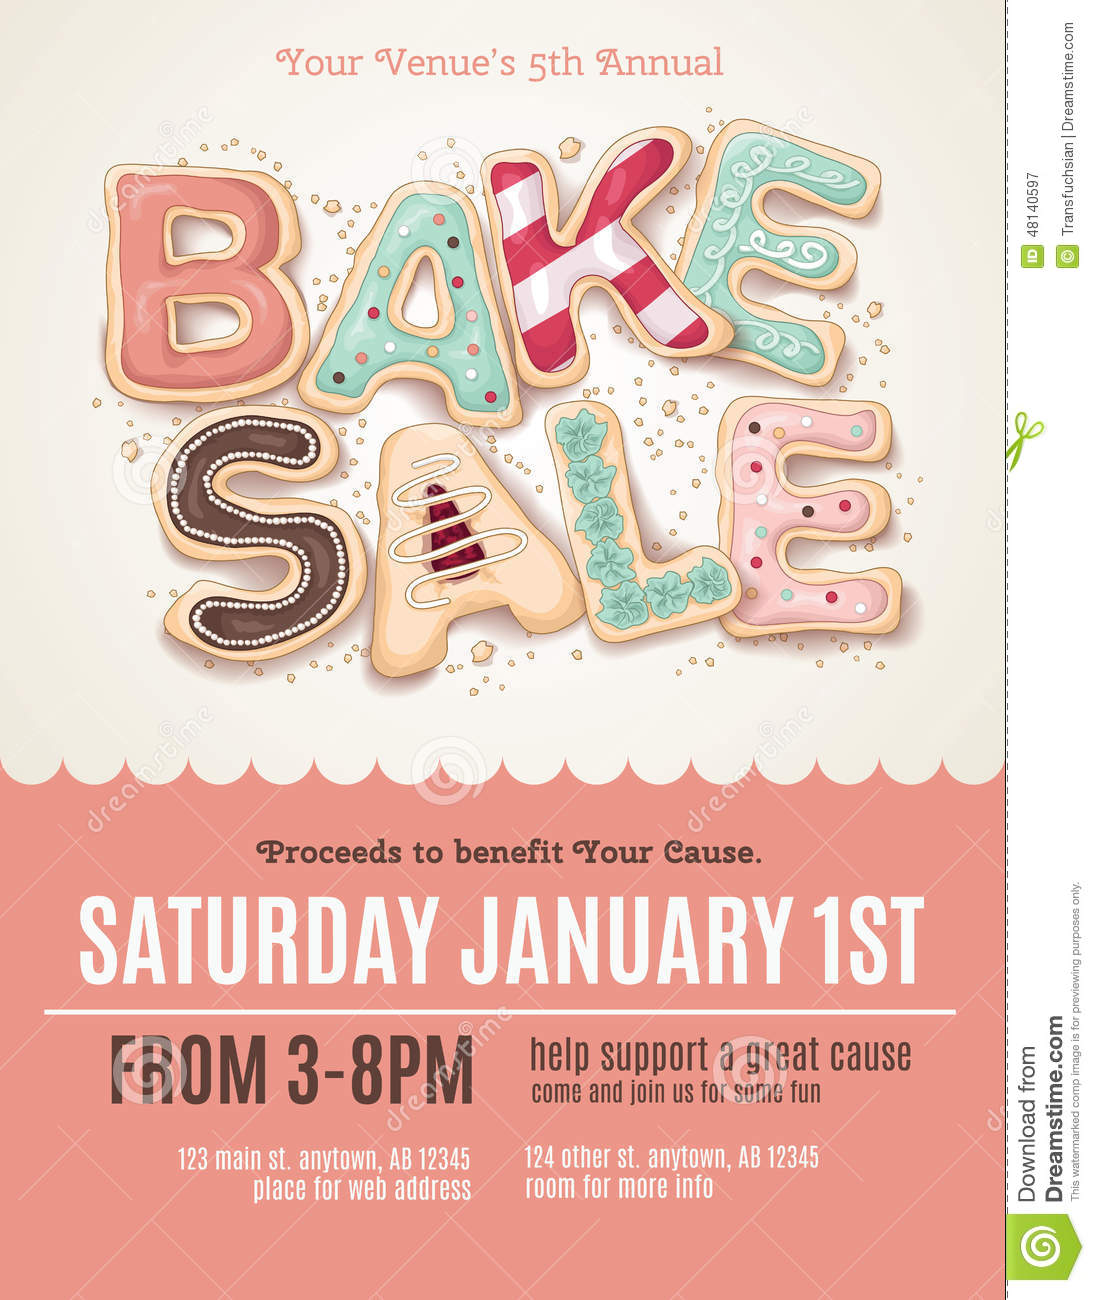 fun cookie bake flyer template stock vector image  fun cookie bake flyer template